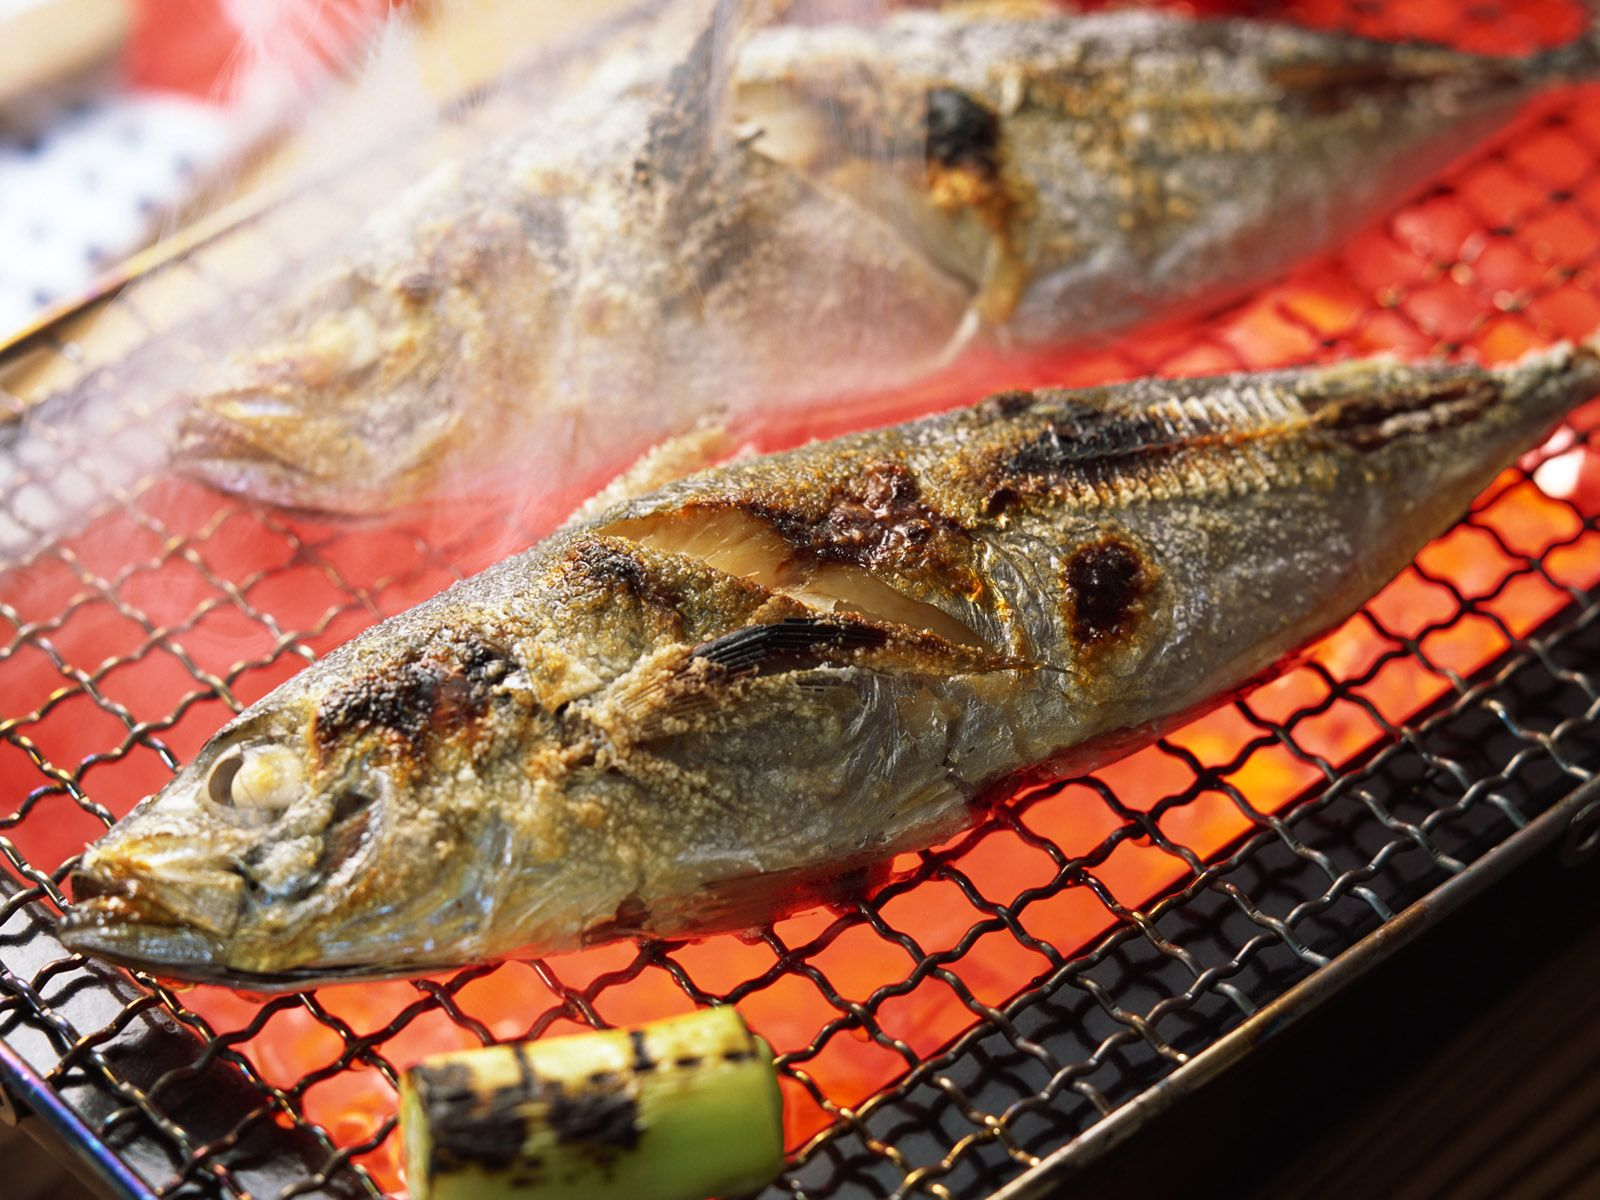 1600x1200 Grilled Fish wallpapers and images - wallpapers, pictures, photos